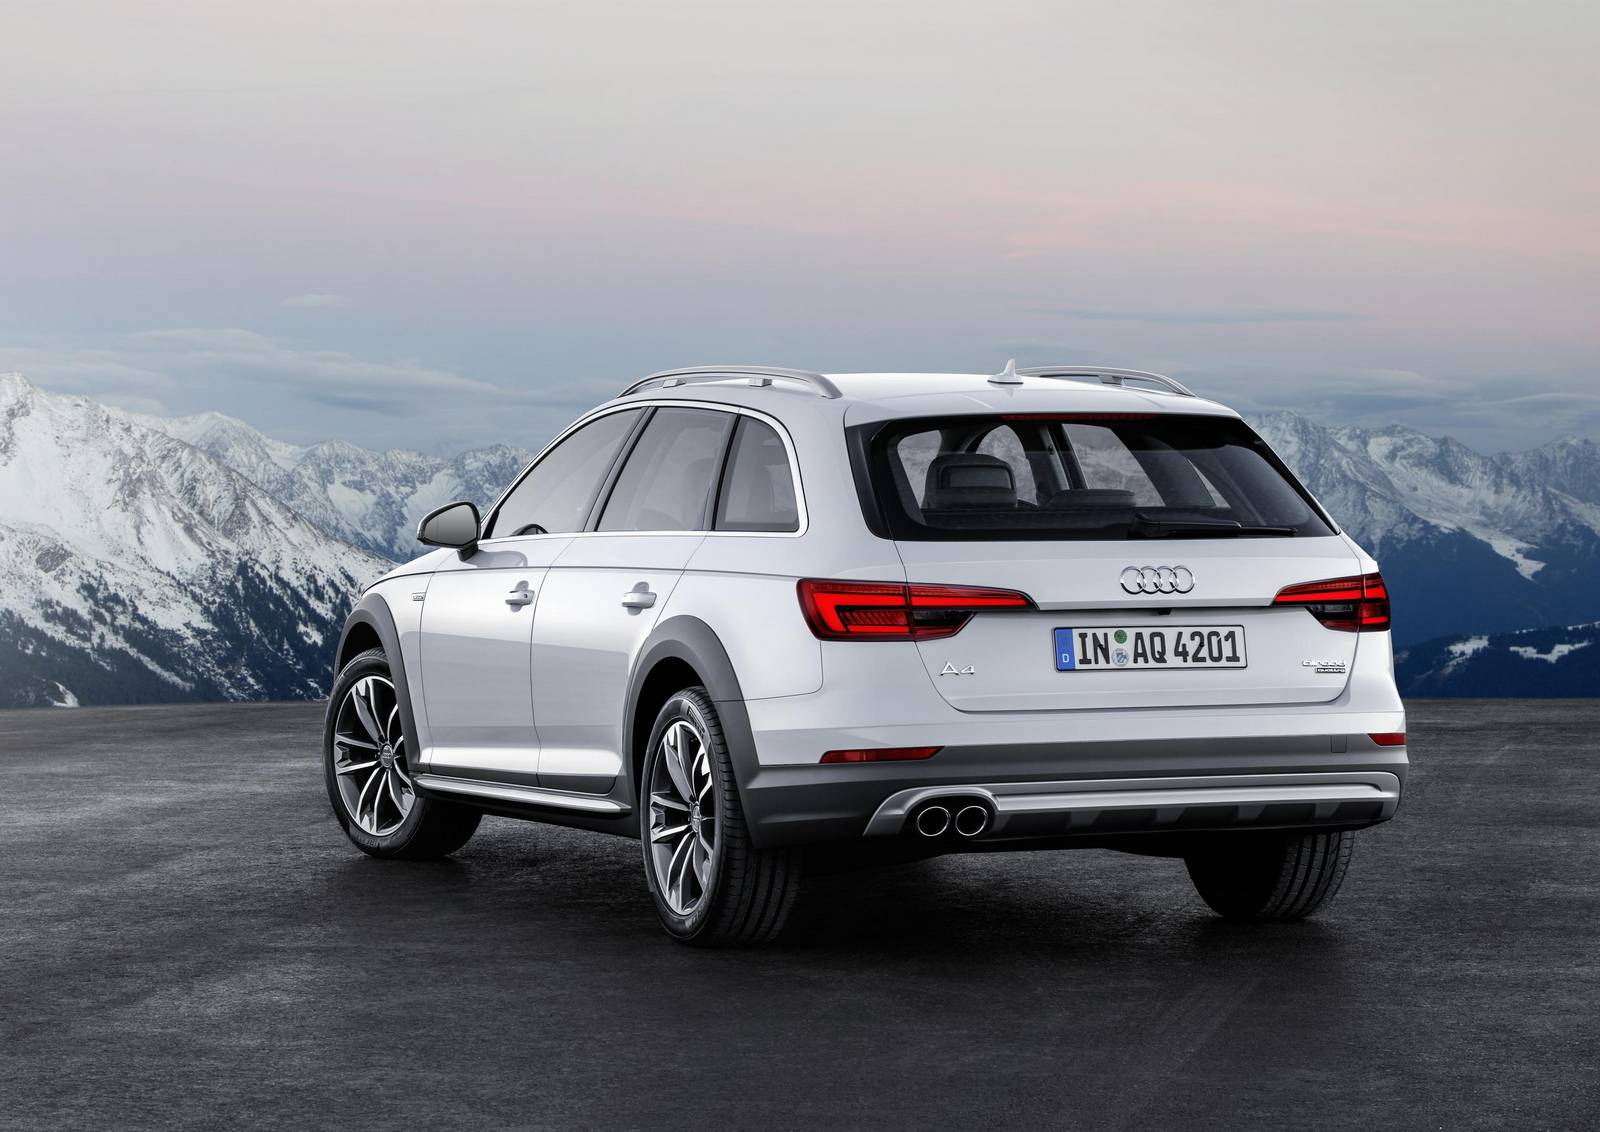 2019 G Wagon >> Official: 2016 Audi A4 Allroad Quattro - GTspirit